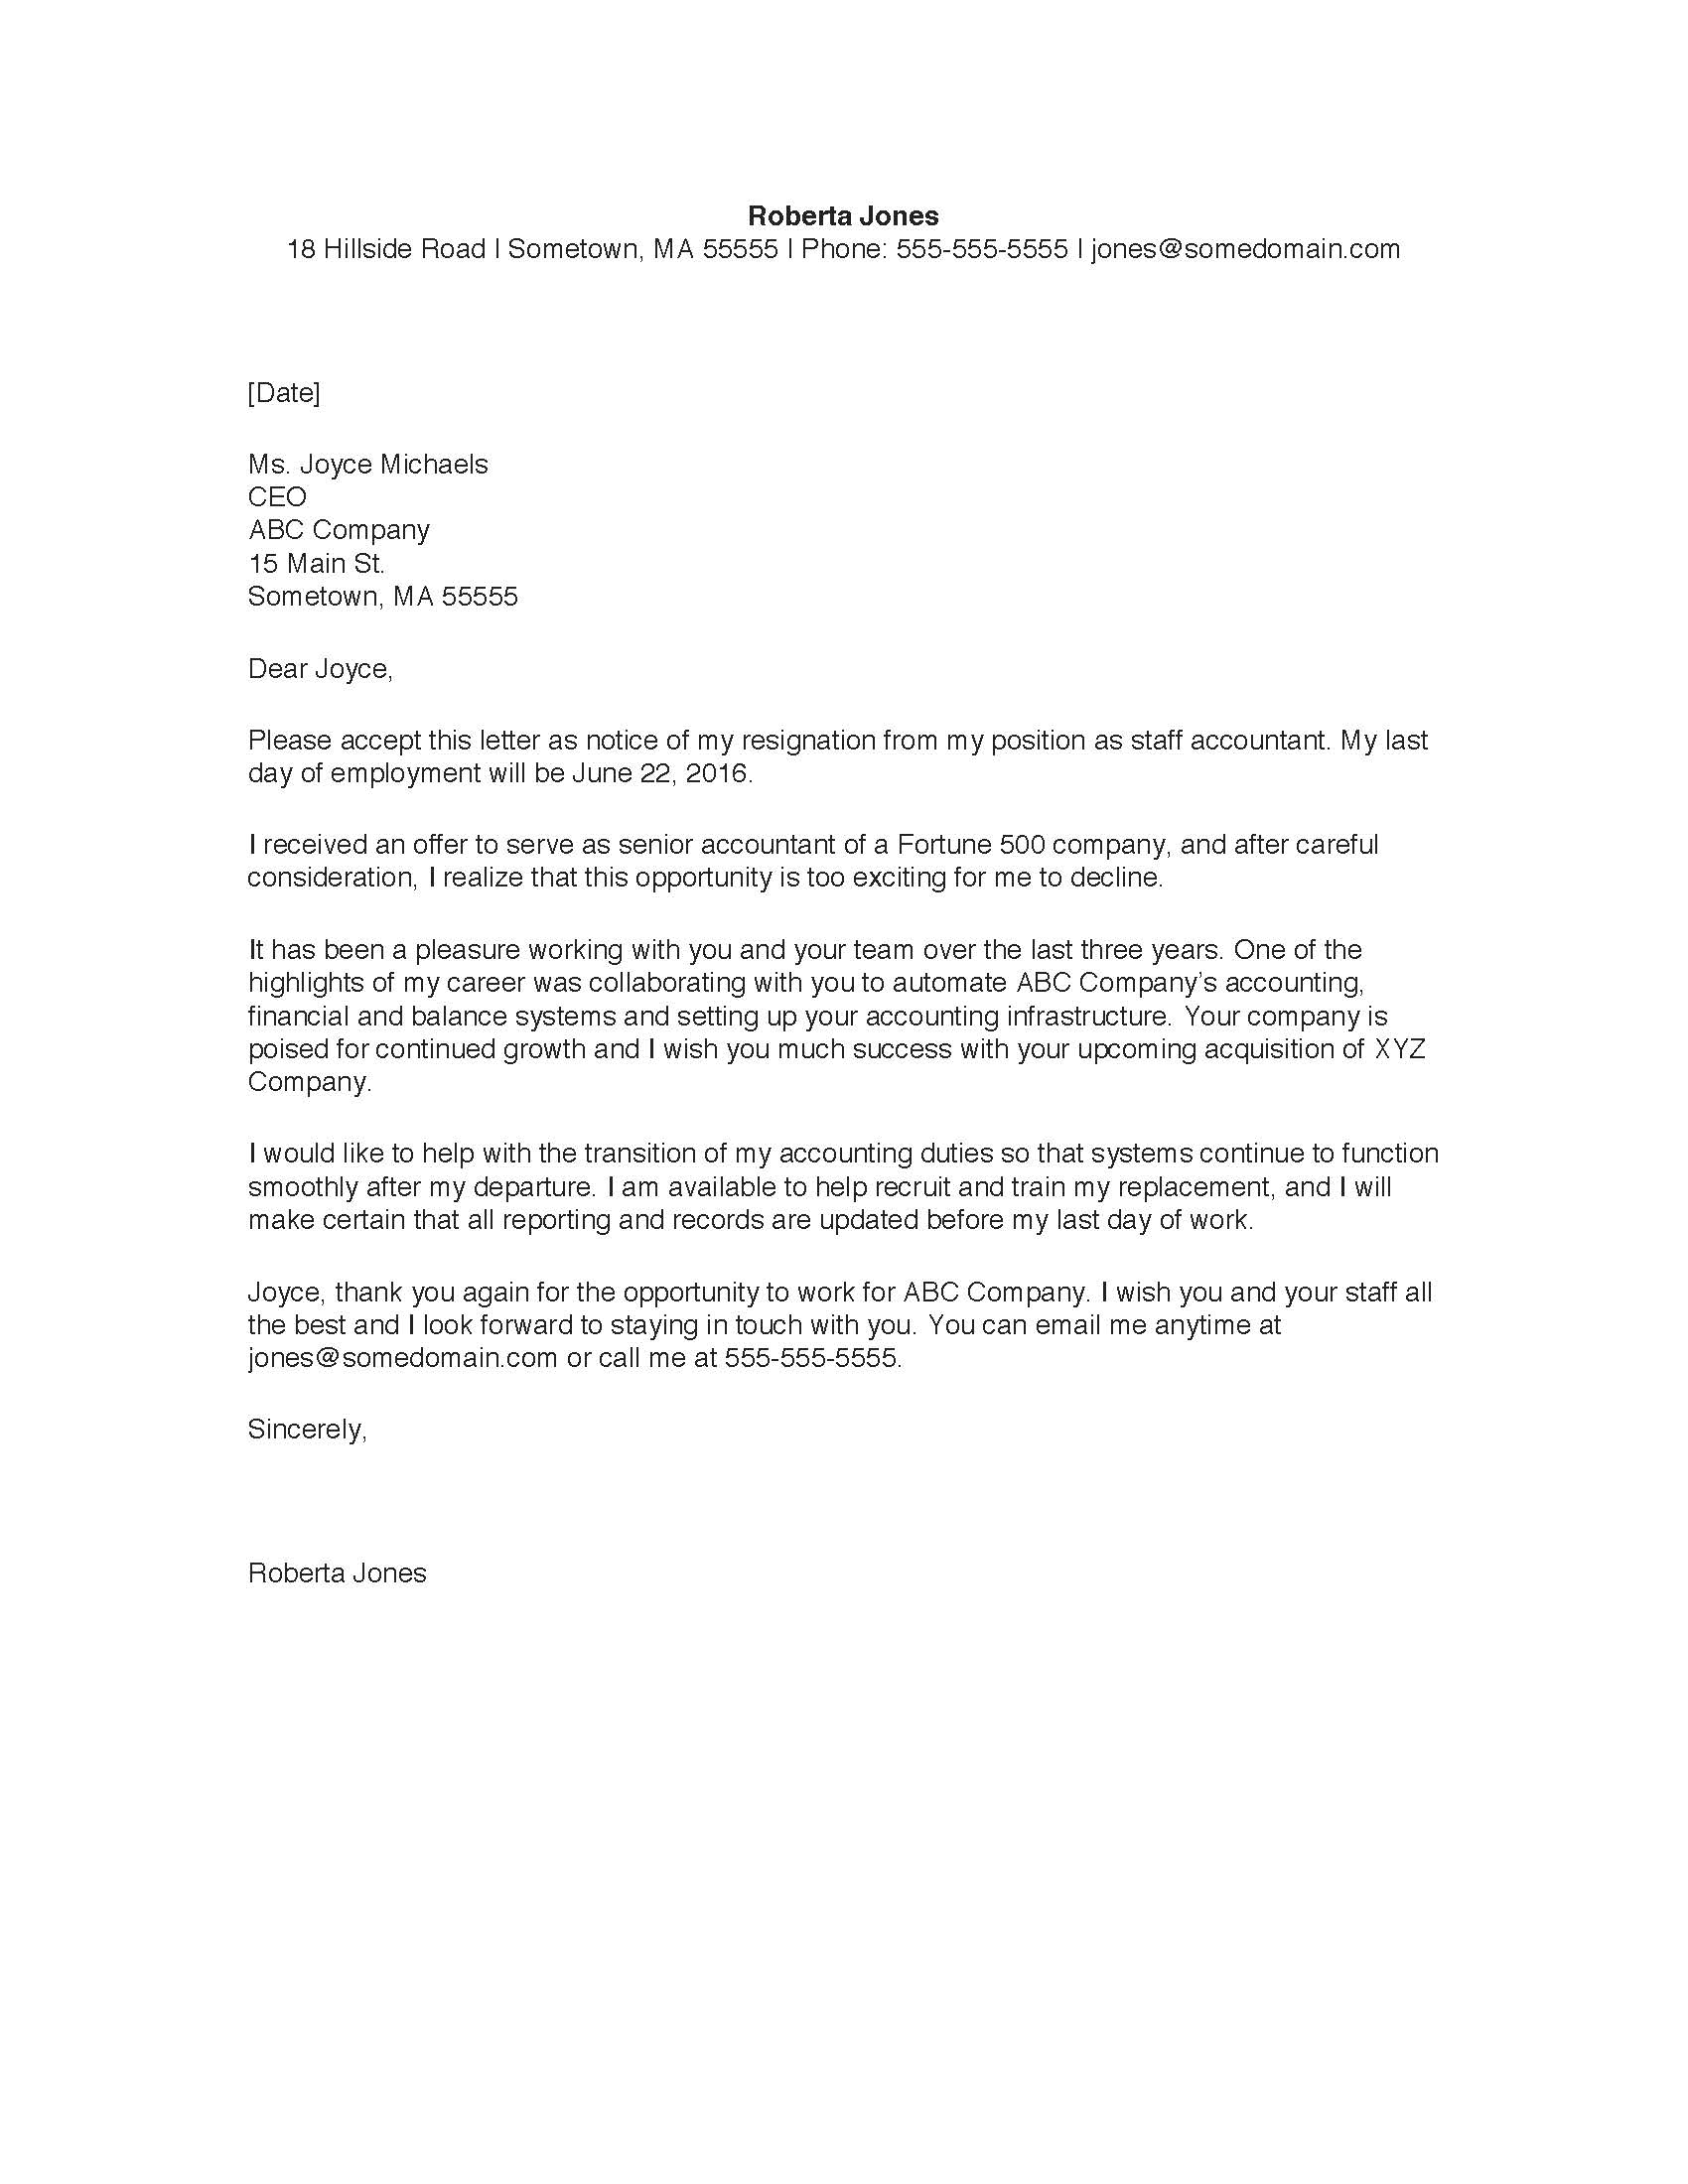 Example resign letter format images letter format formal example sample resignation letter monster spiritdancerdesigns Gallery